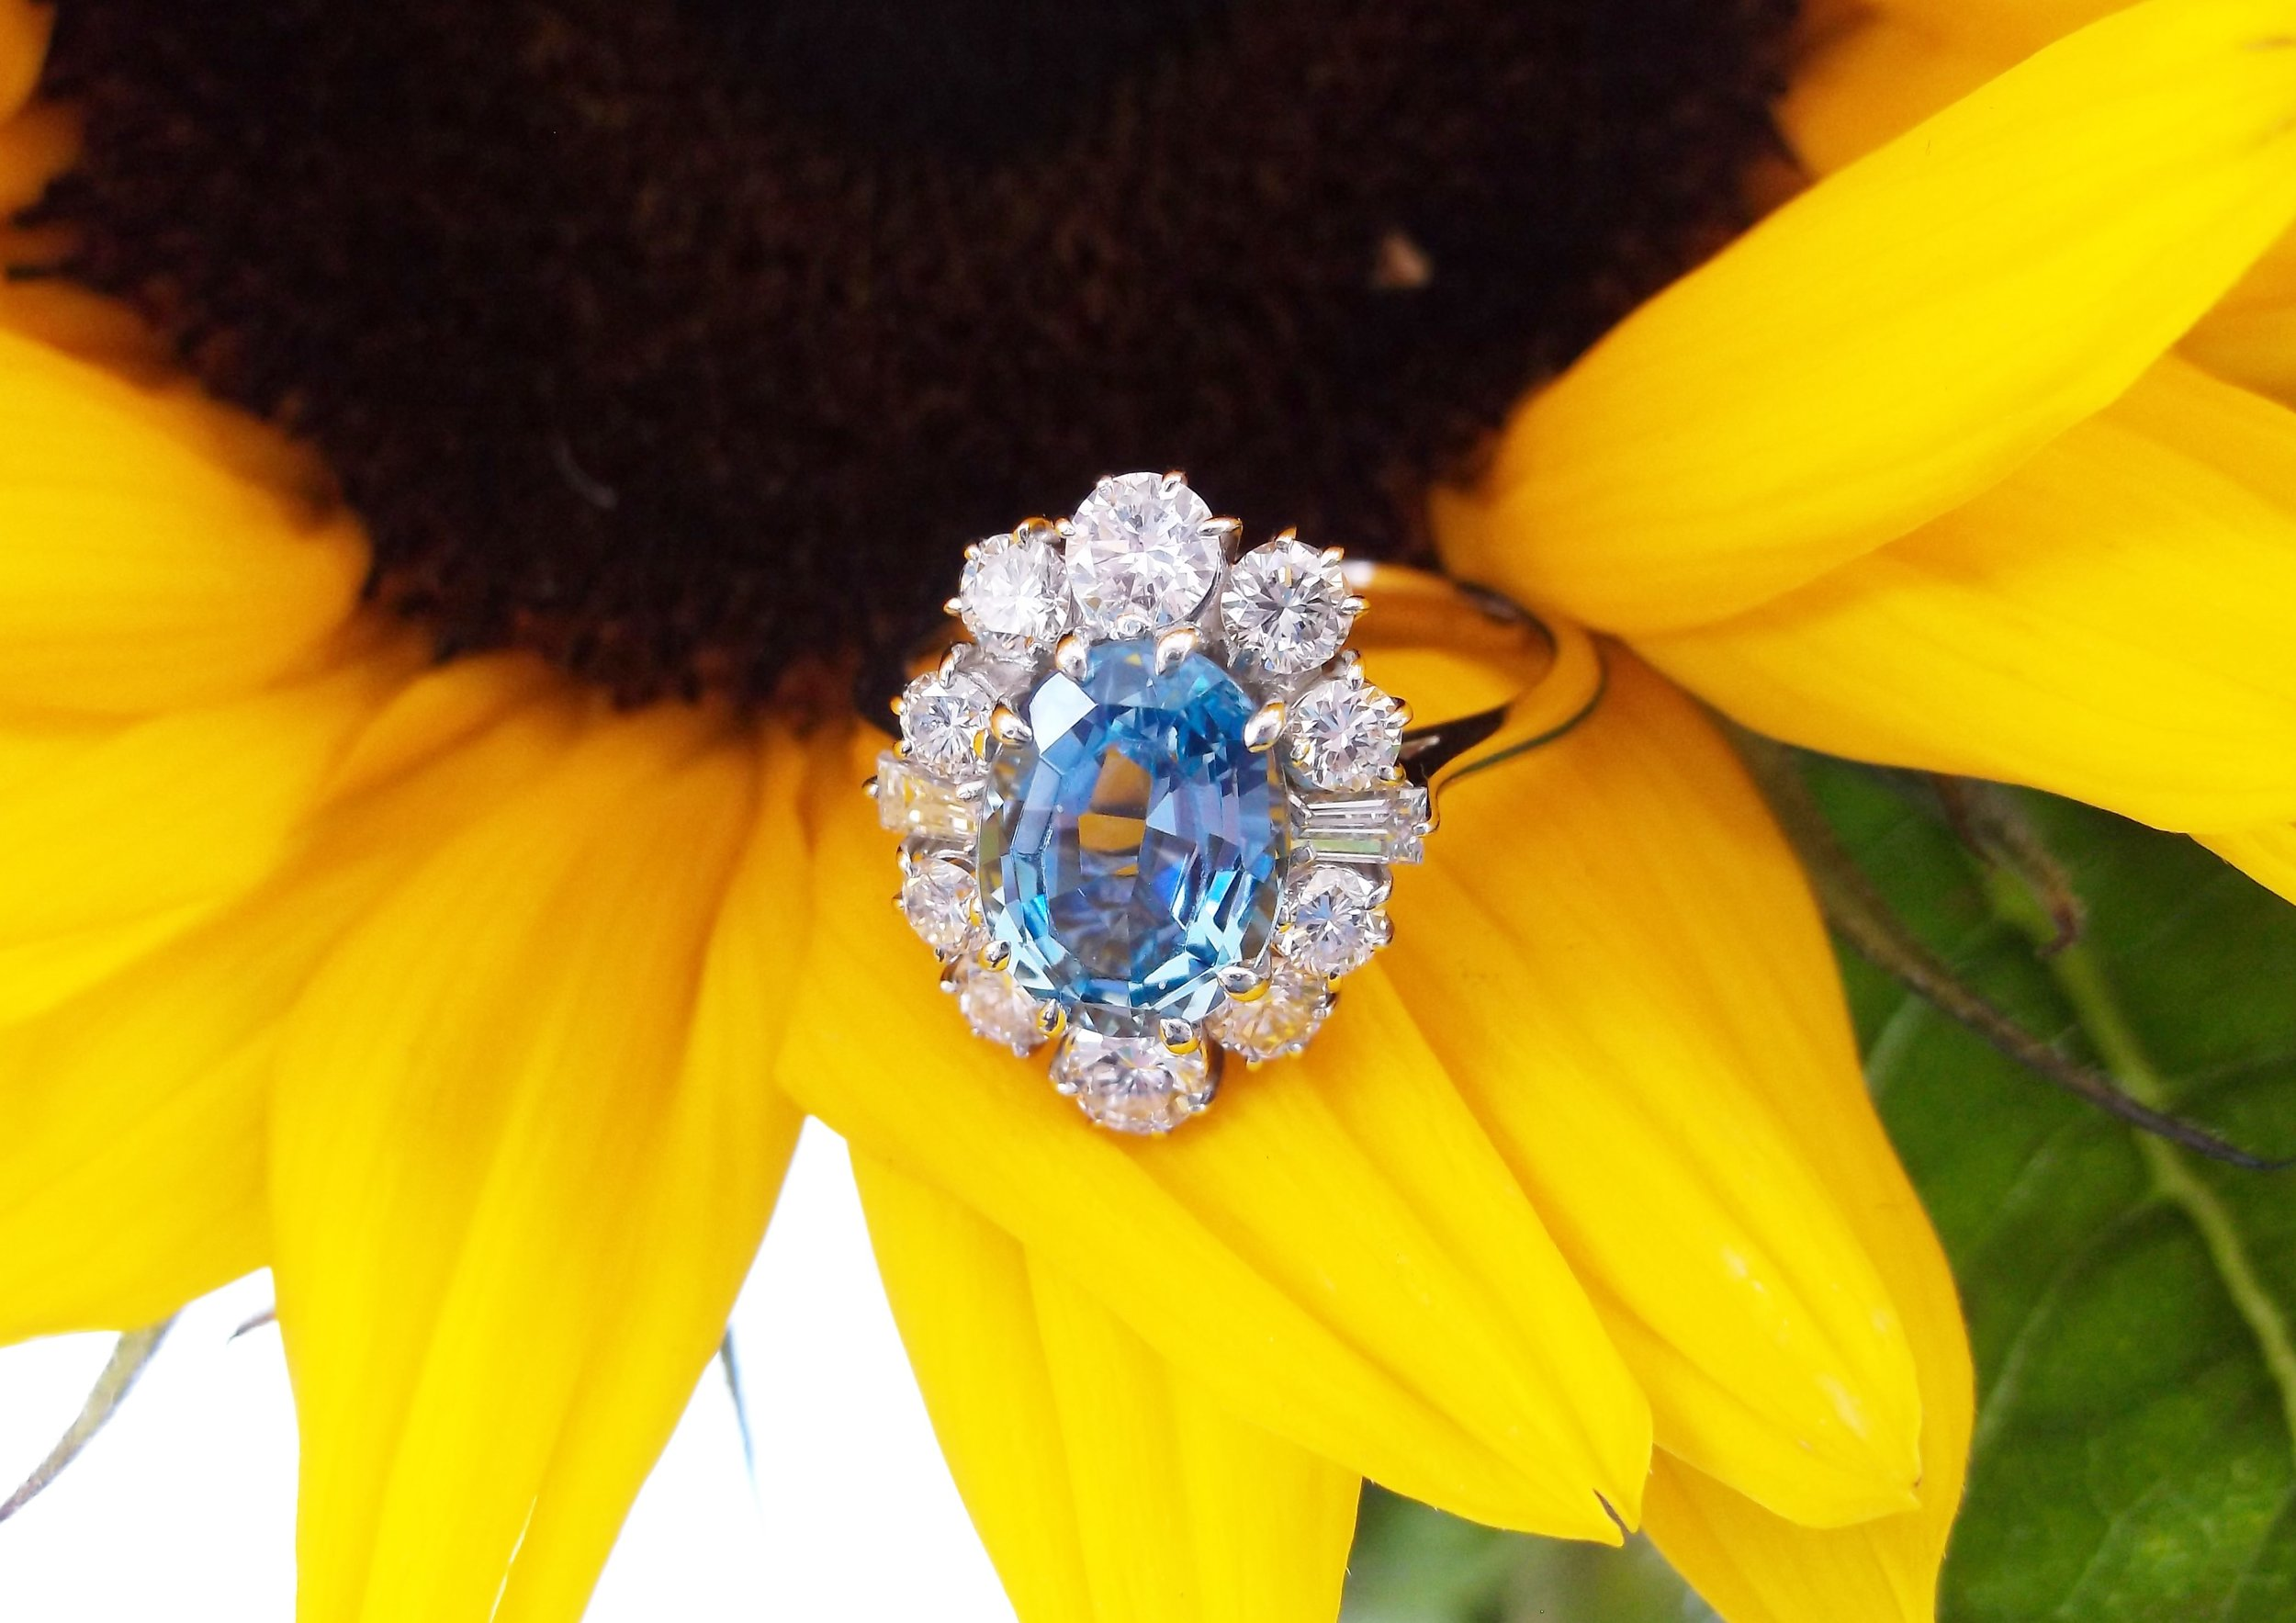 SOLD - Darling 1.75 carat aquamarine, surrounded by 1.00 carats total weight in diamonds.